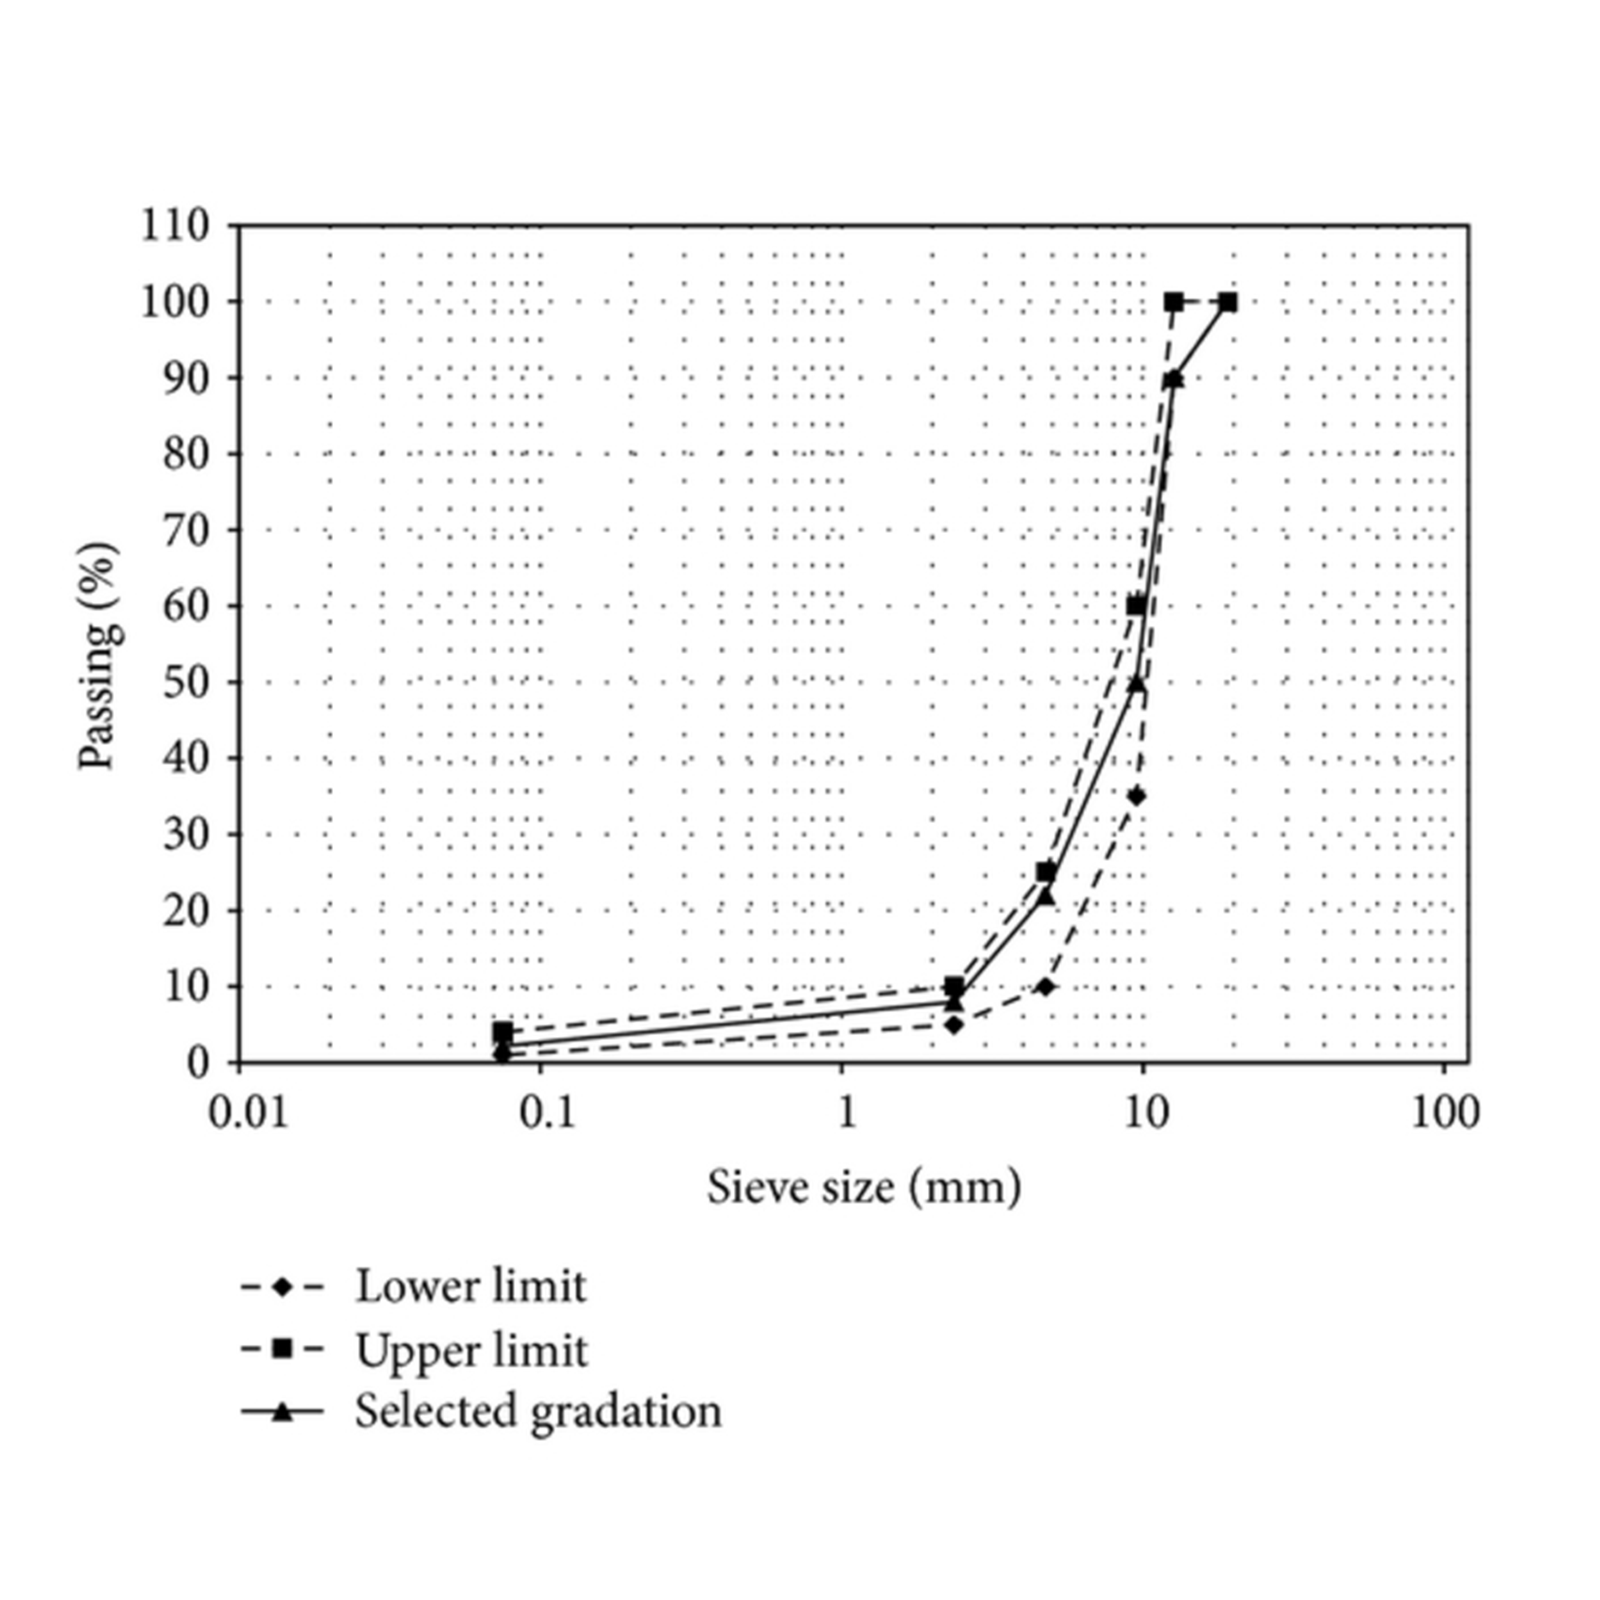 Aggregate Gradation - The particle size distribution from the largest through finest materials.